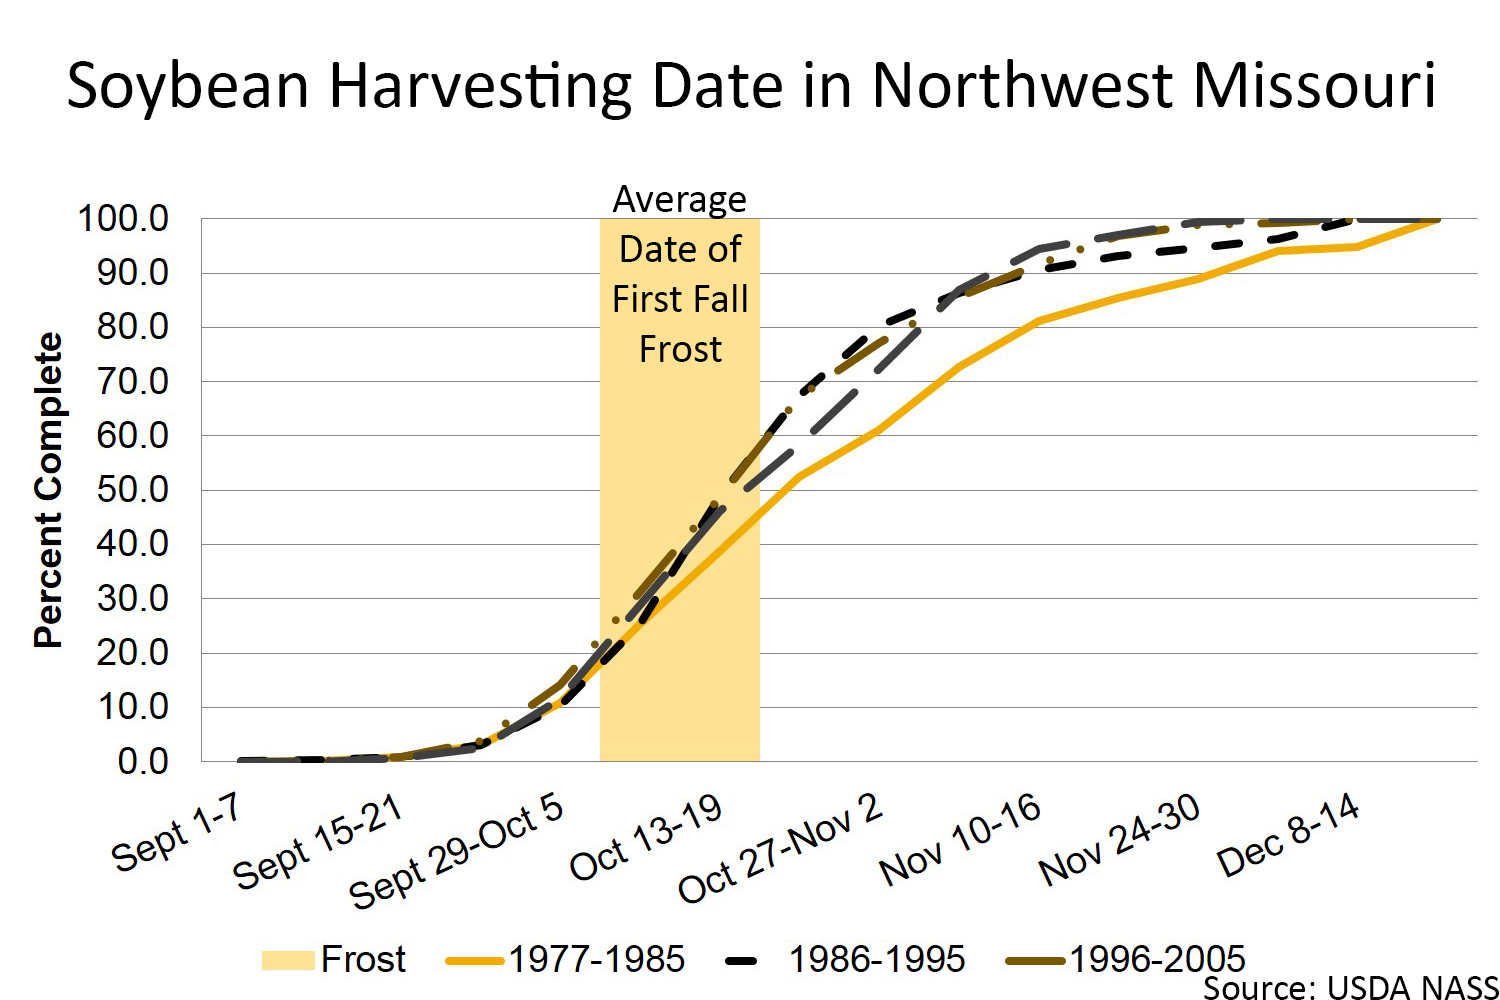 Soybean harvesting date in Northwest Missouri chart